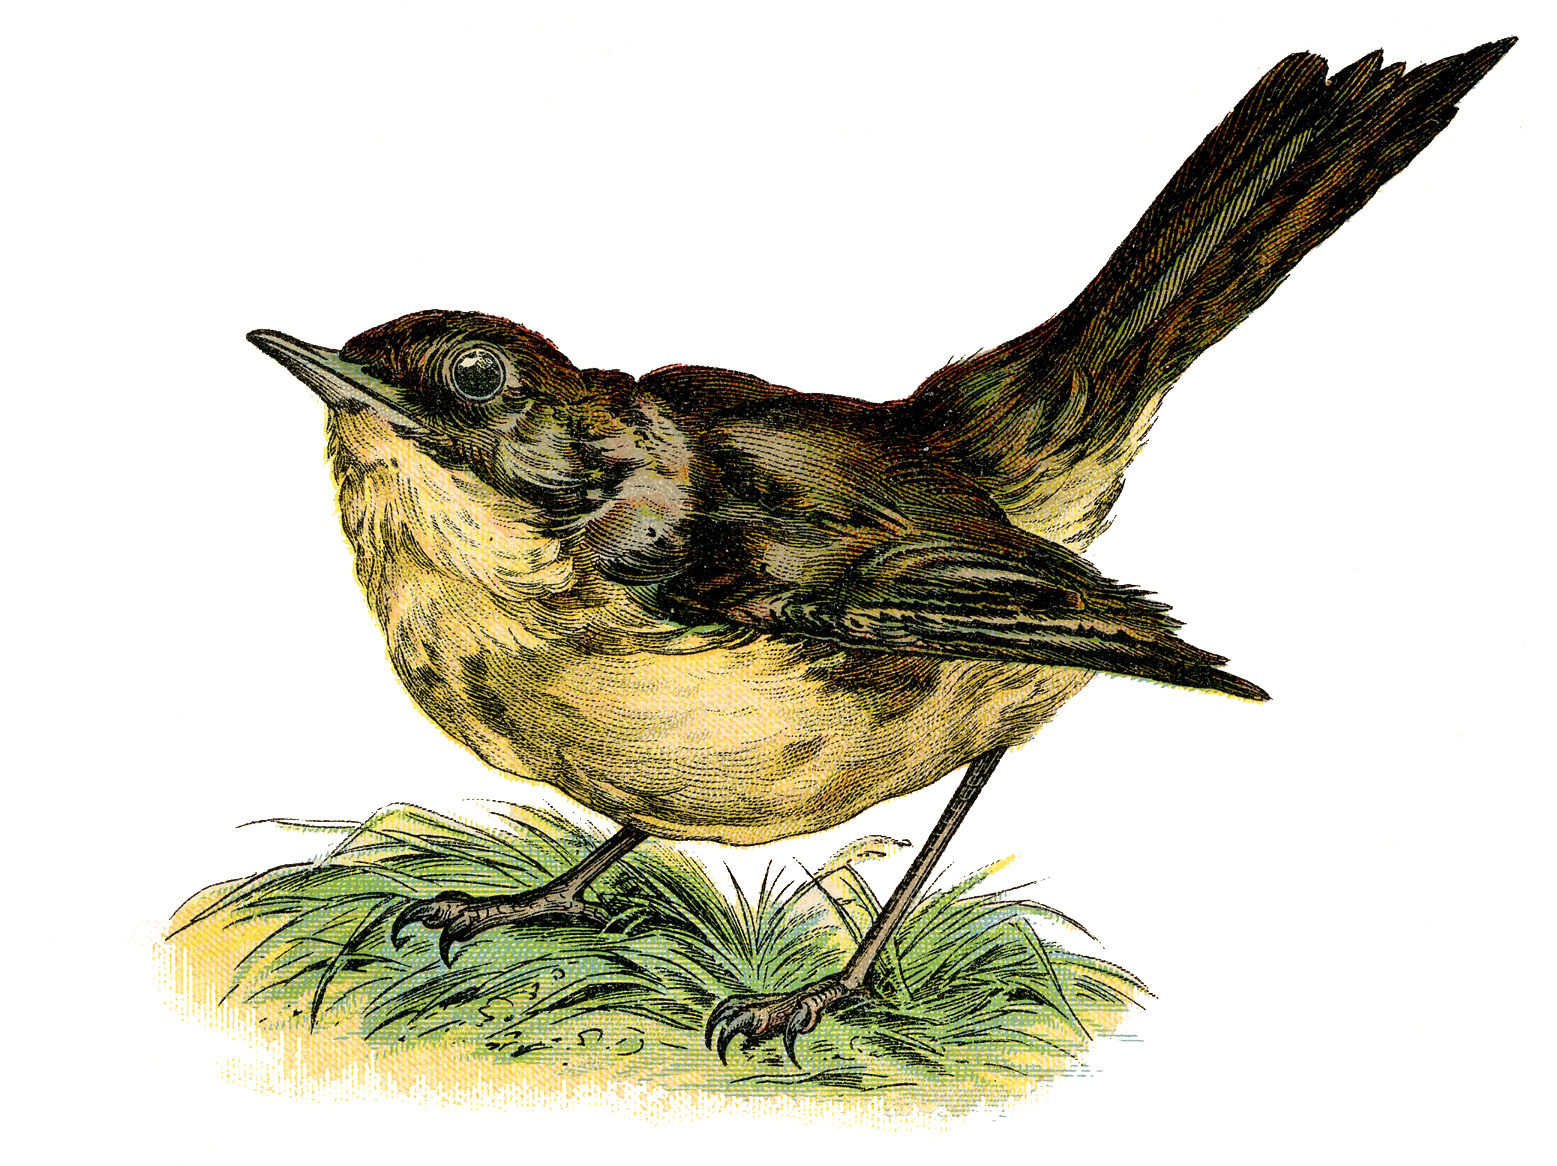 essay on nightingale bird 196 words short essay on the birds for kids saloni advertisements: the bird is a flying feathered creature, with two strong wings and two legs it can fly in the sky and travel long distances in the air.